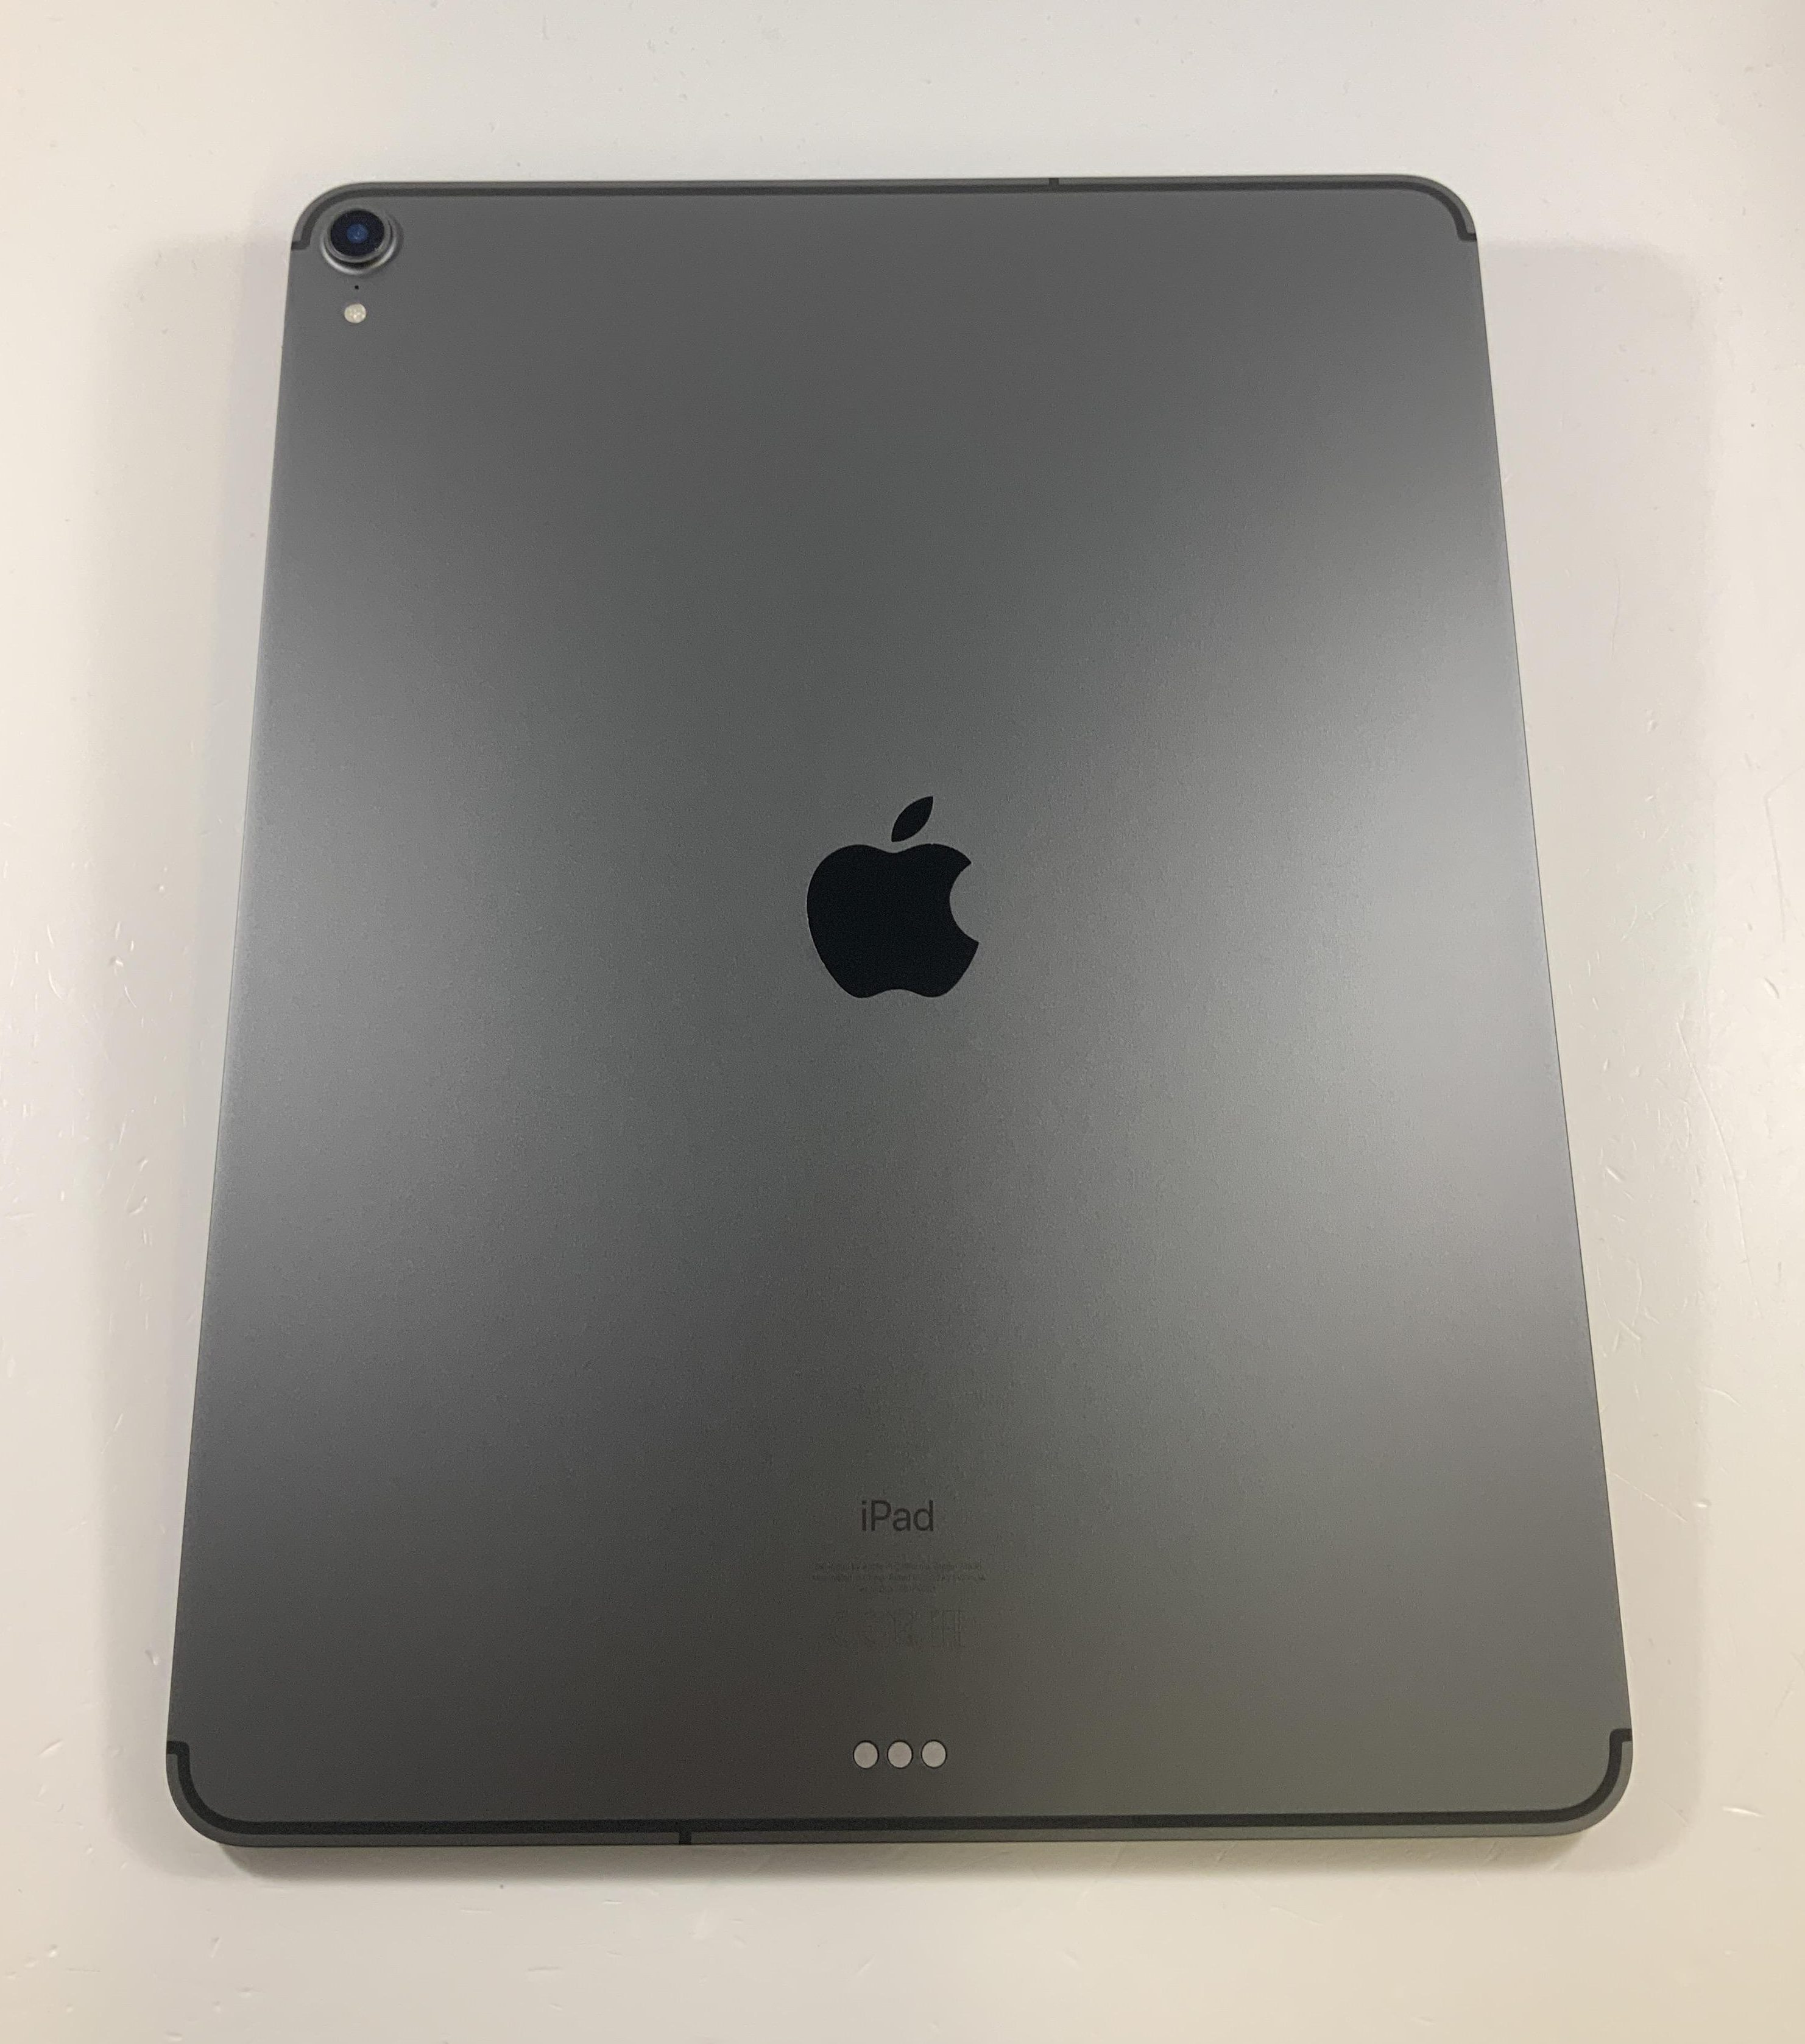 "iPad Pro 12.9"" Wi-Fi + Cellular (3rd Gen) 512GB, 512GB, Space Gray, image 2"